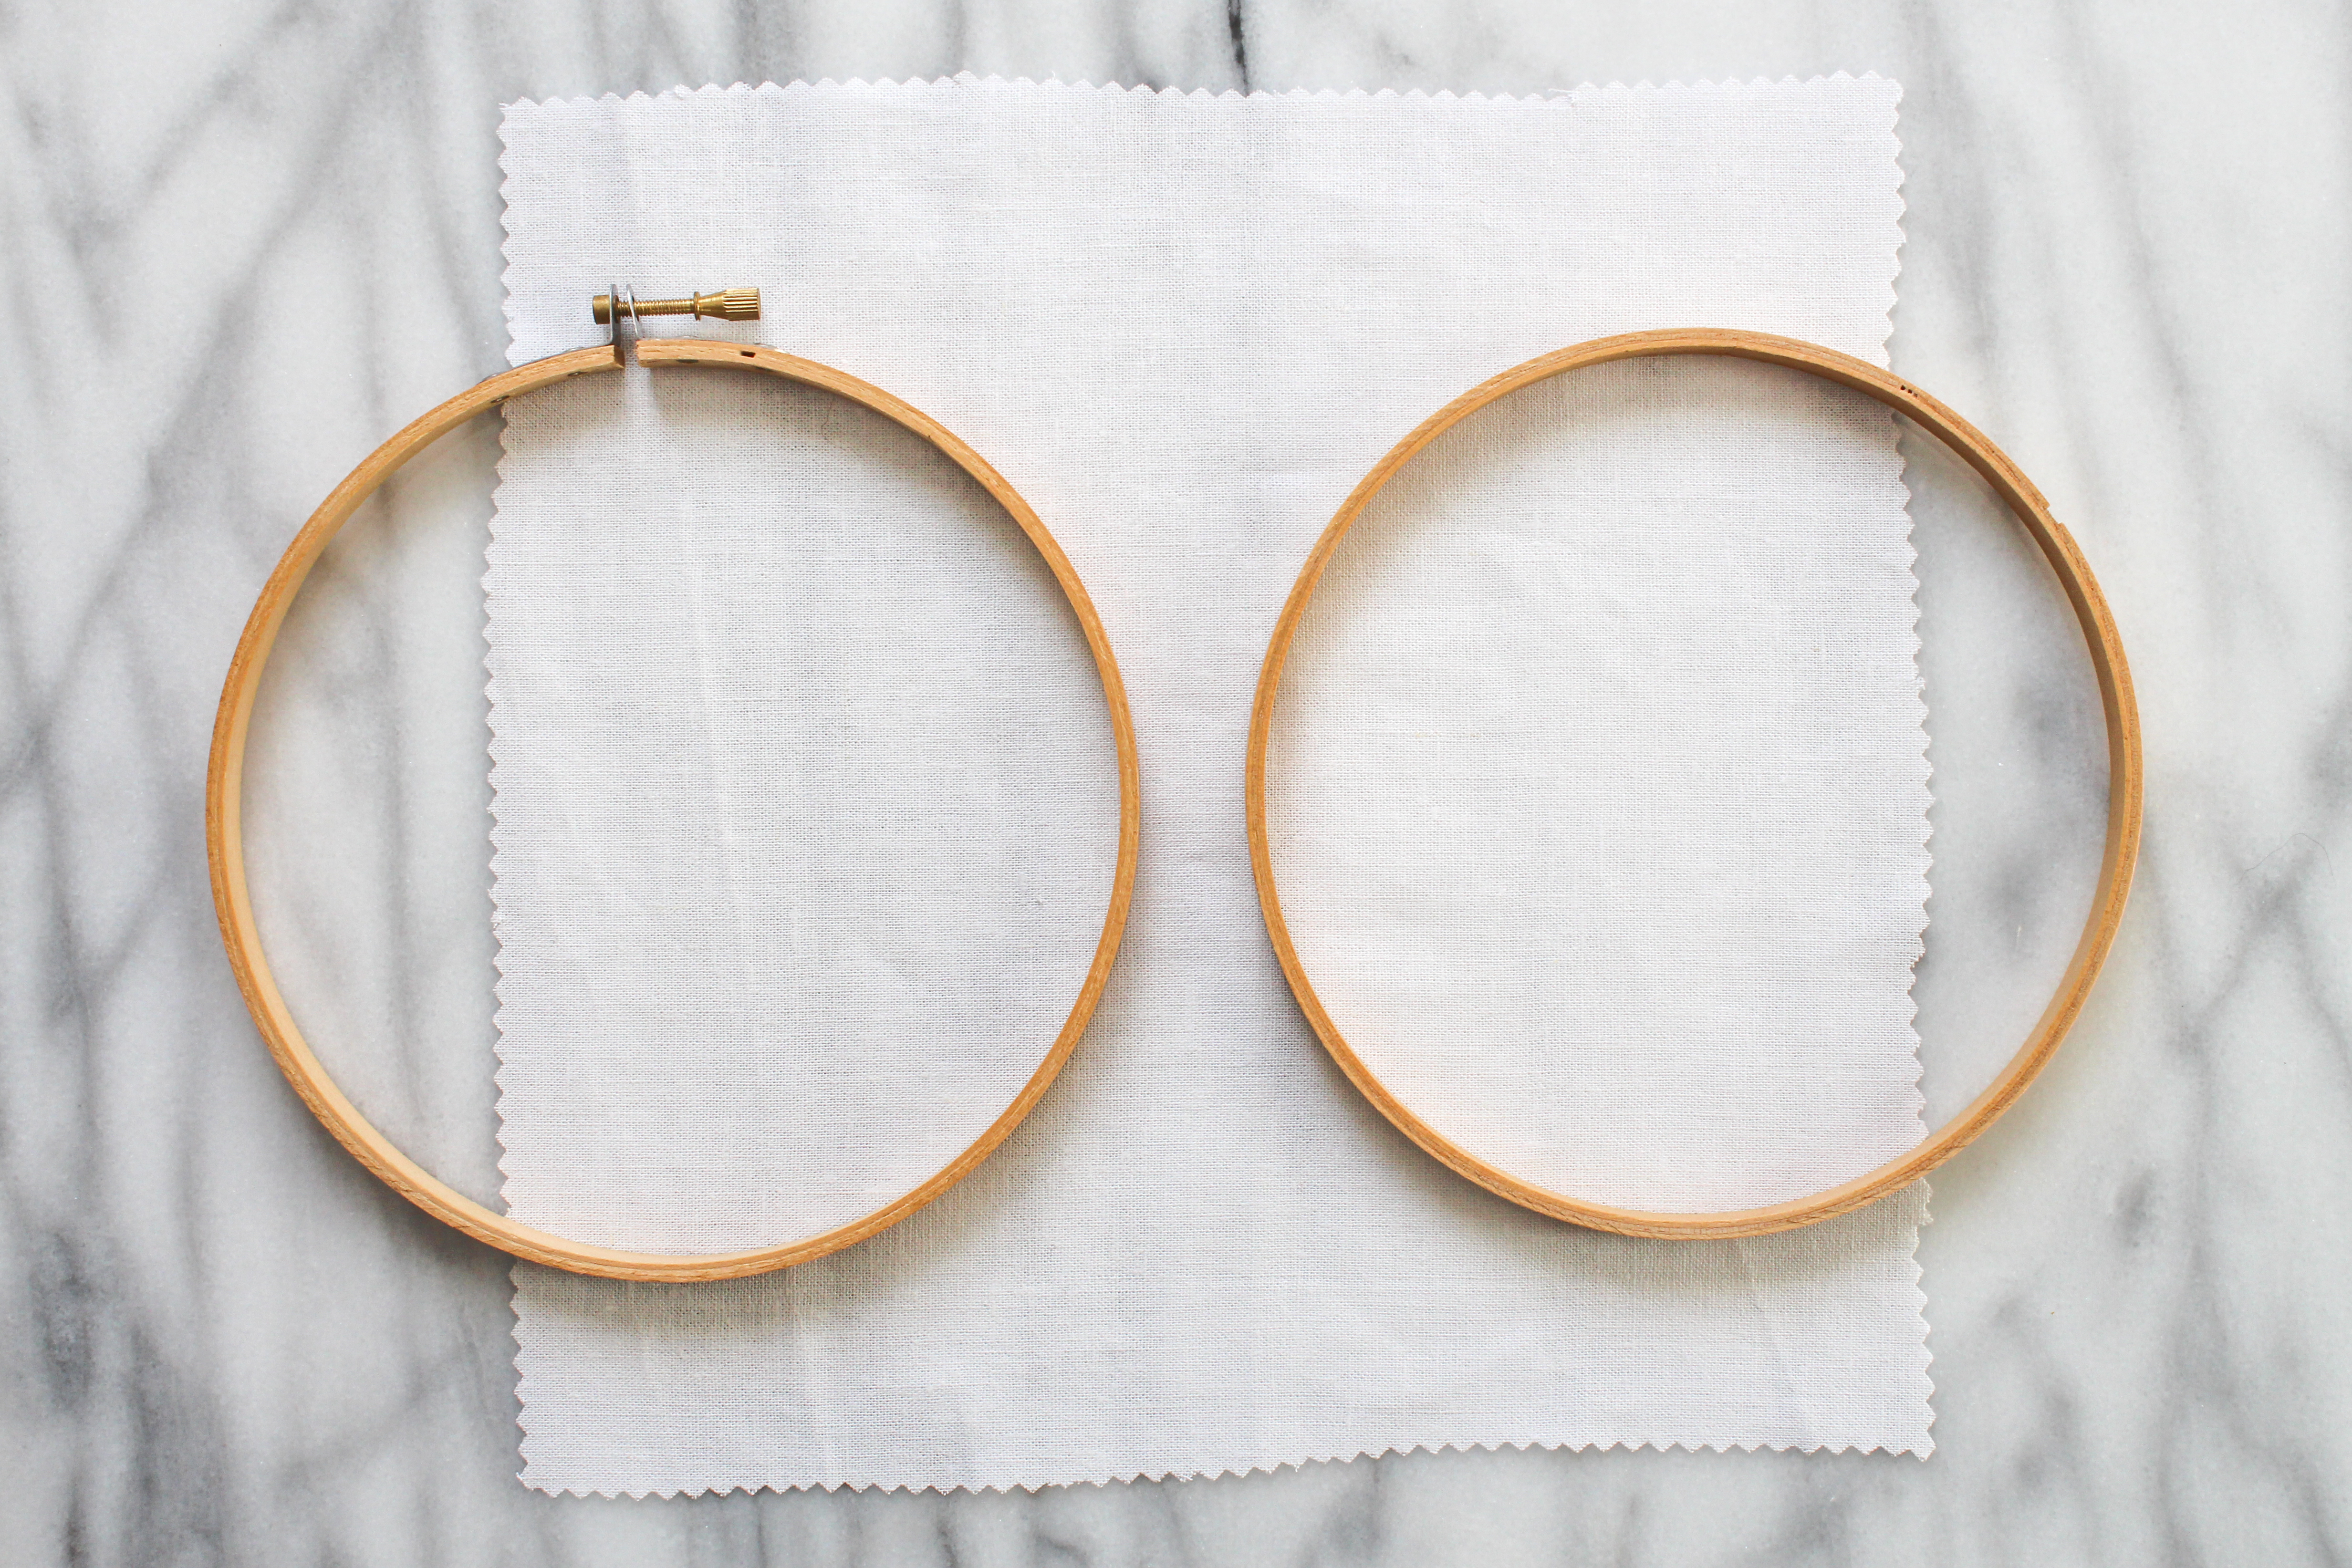 Picture of How to Use an Embroidery Hoop